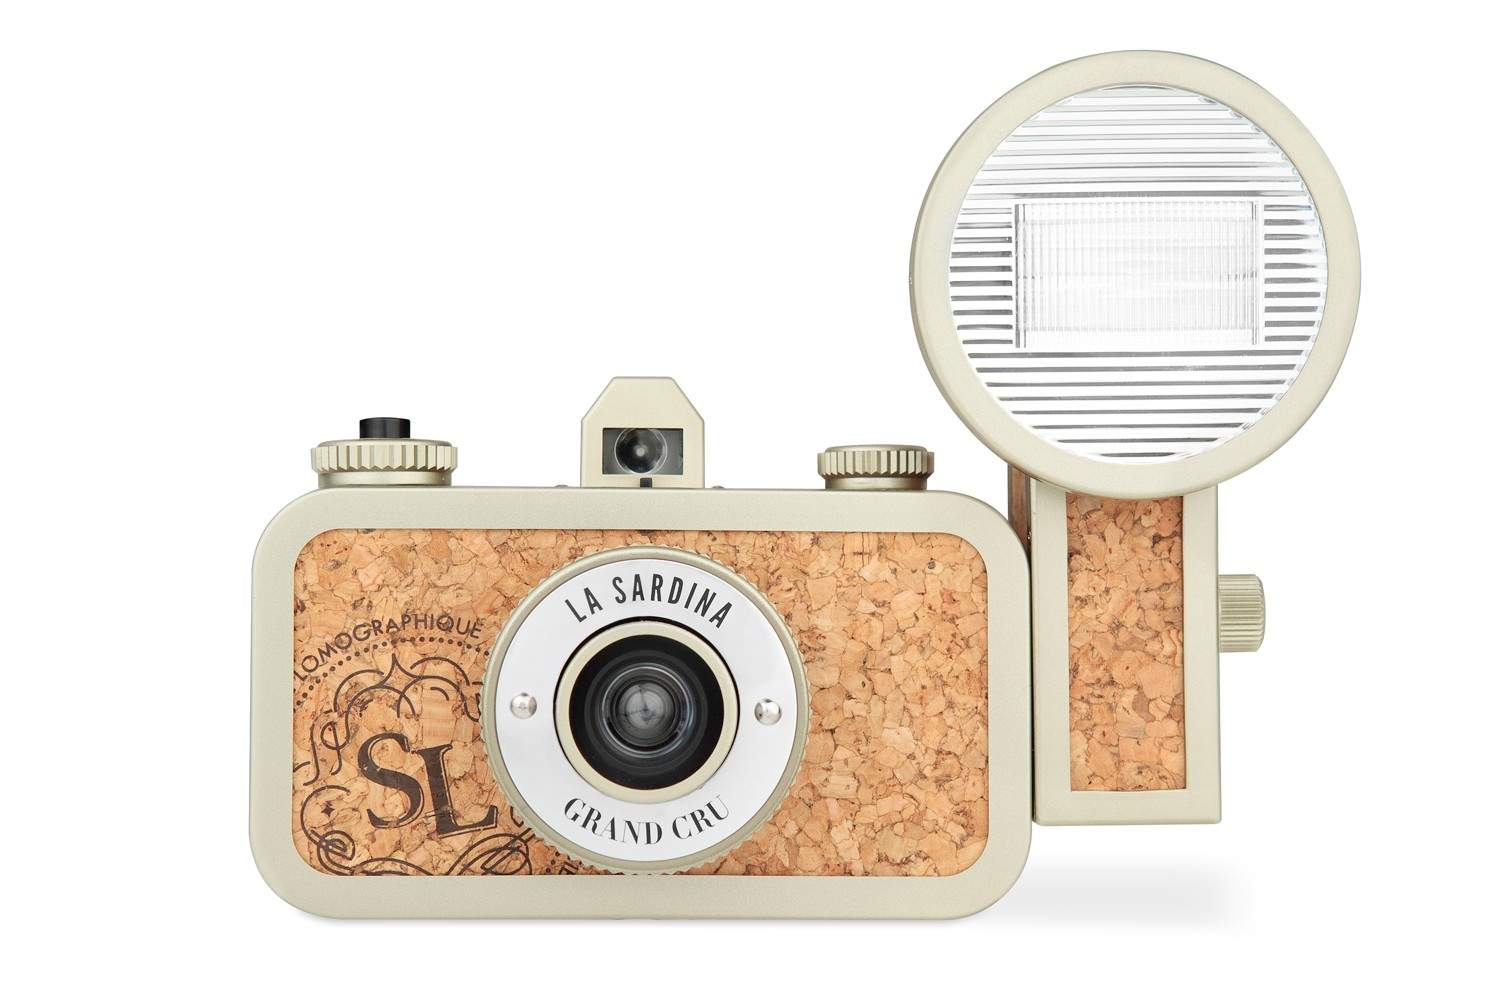 La Sardina Camera and Flash Grand Cru